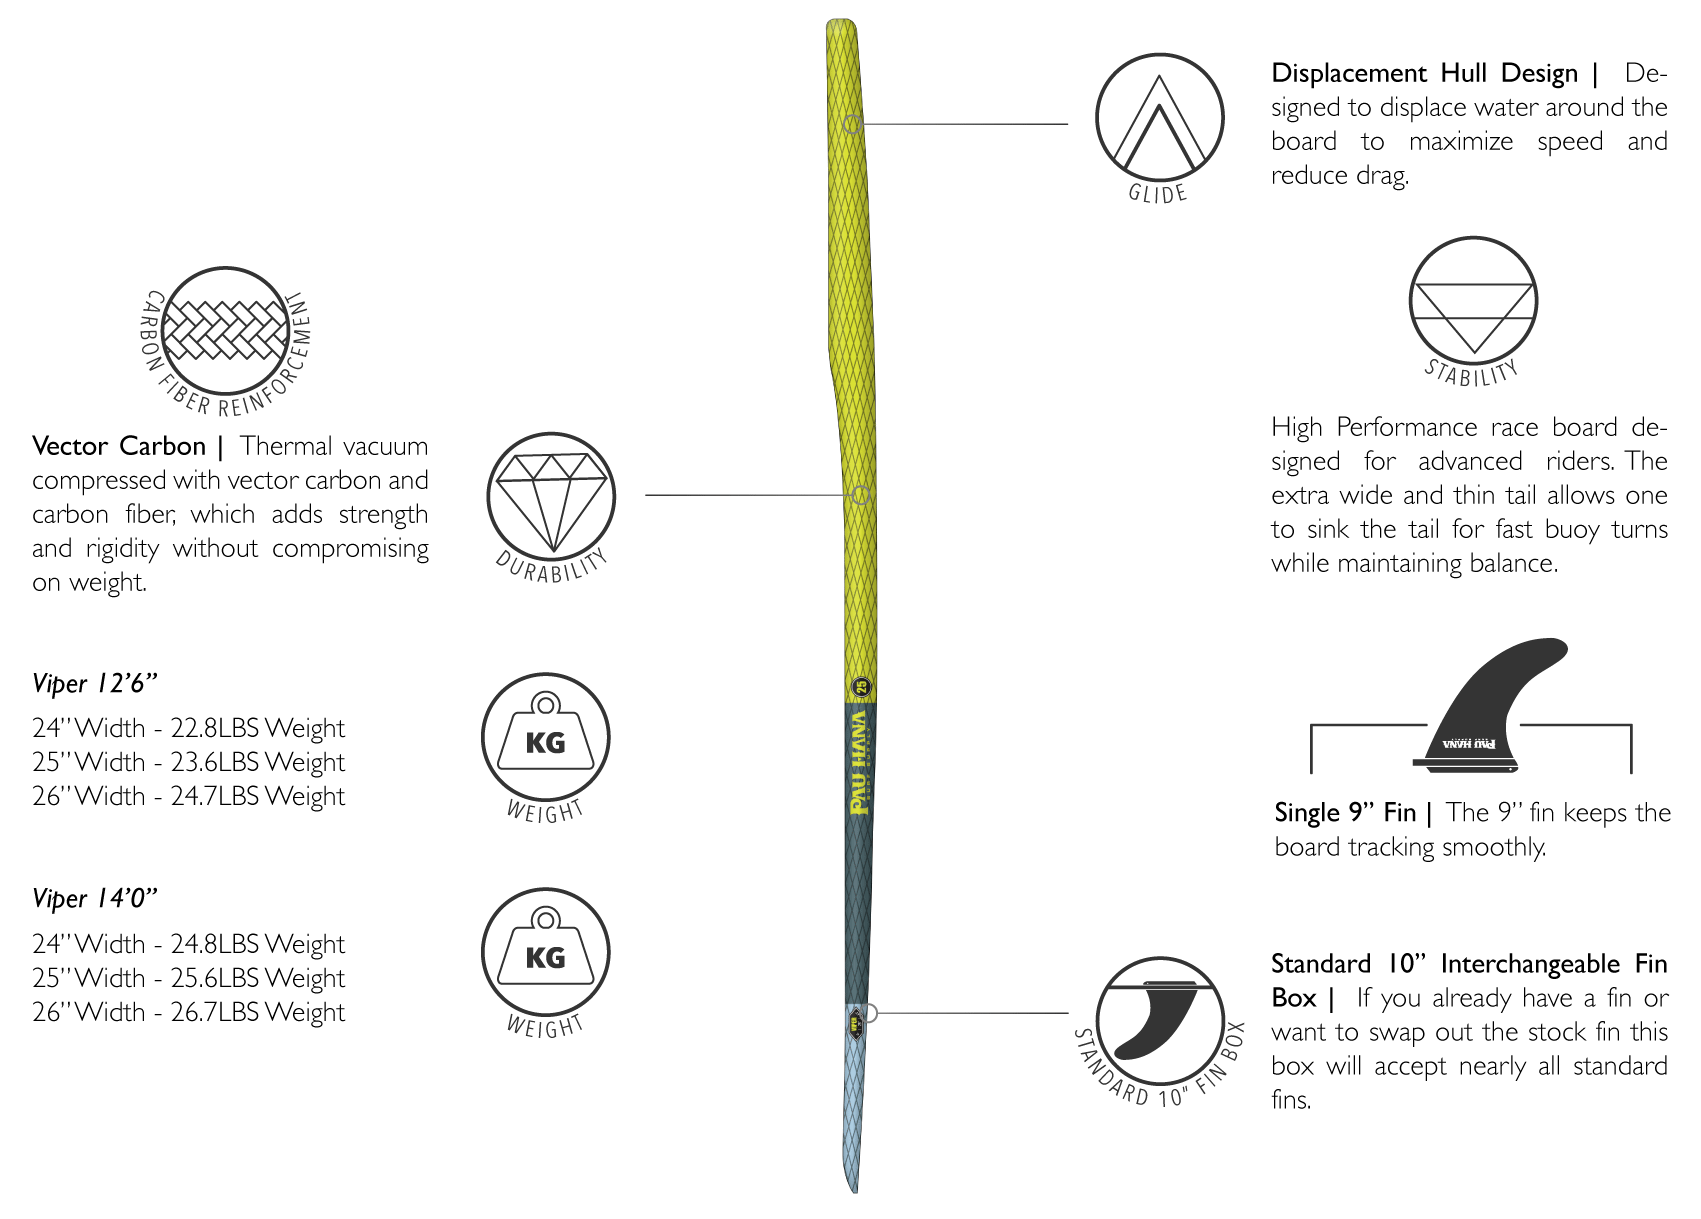 viper pau hana sup paddle board racing features include vector carbon displacement hull design single 9 inch fin and standard 10 inch interchangeable fin box